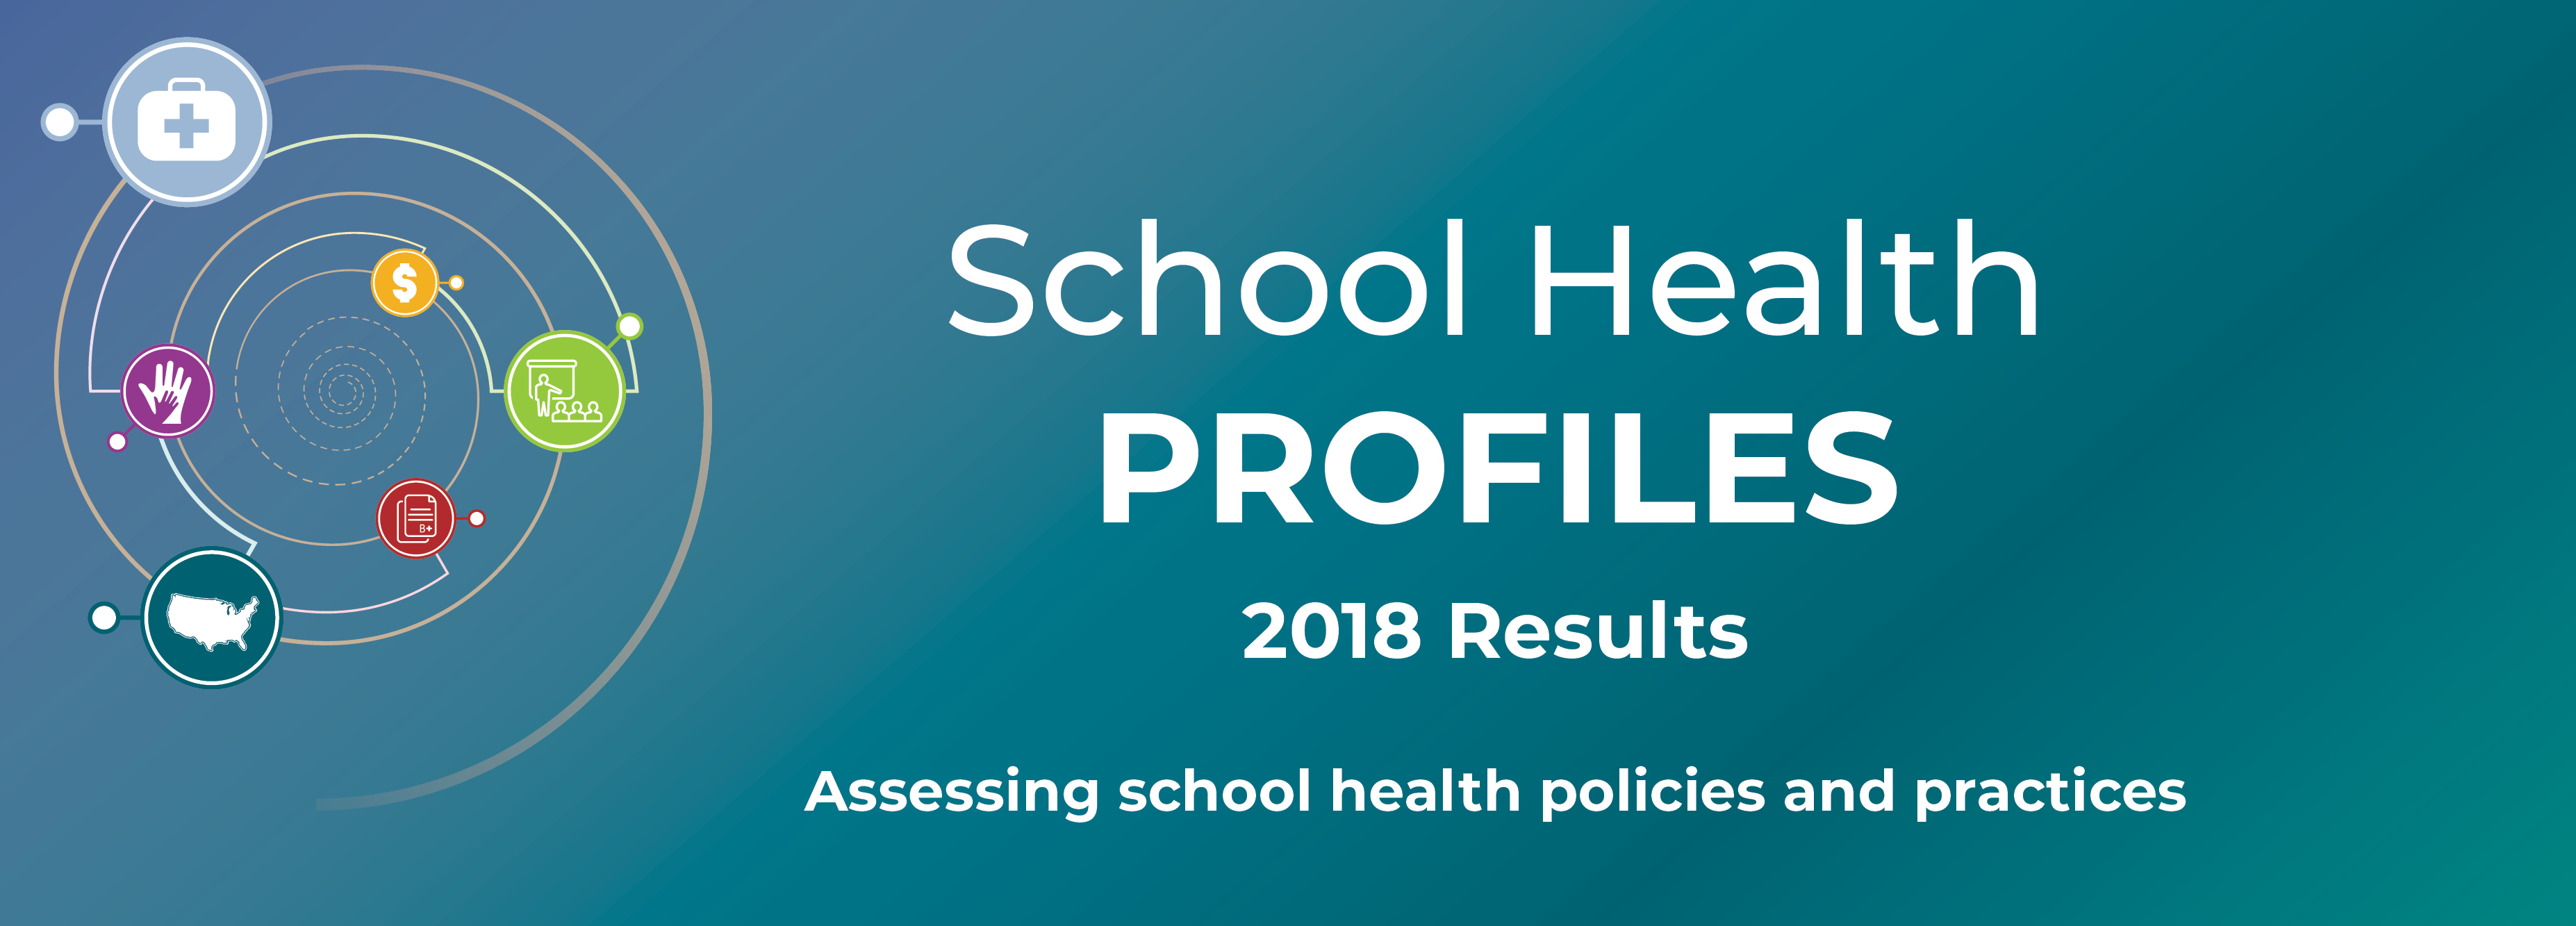 School Health Profiles 2018 Results: Assessing School Health Policies and Practices